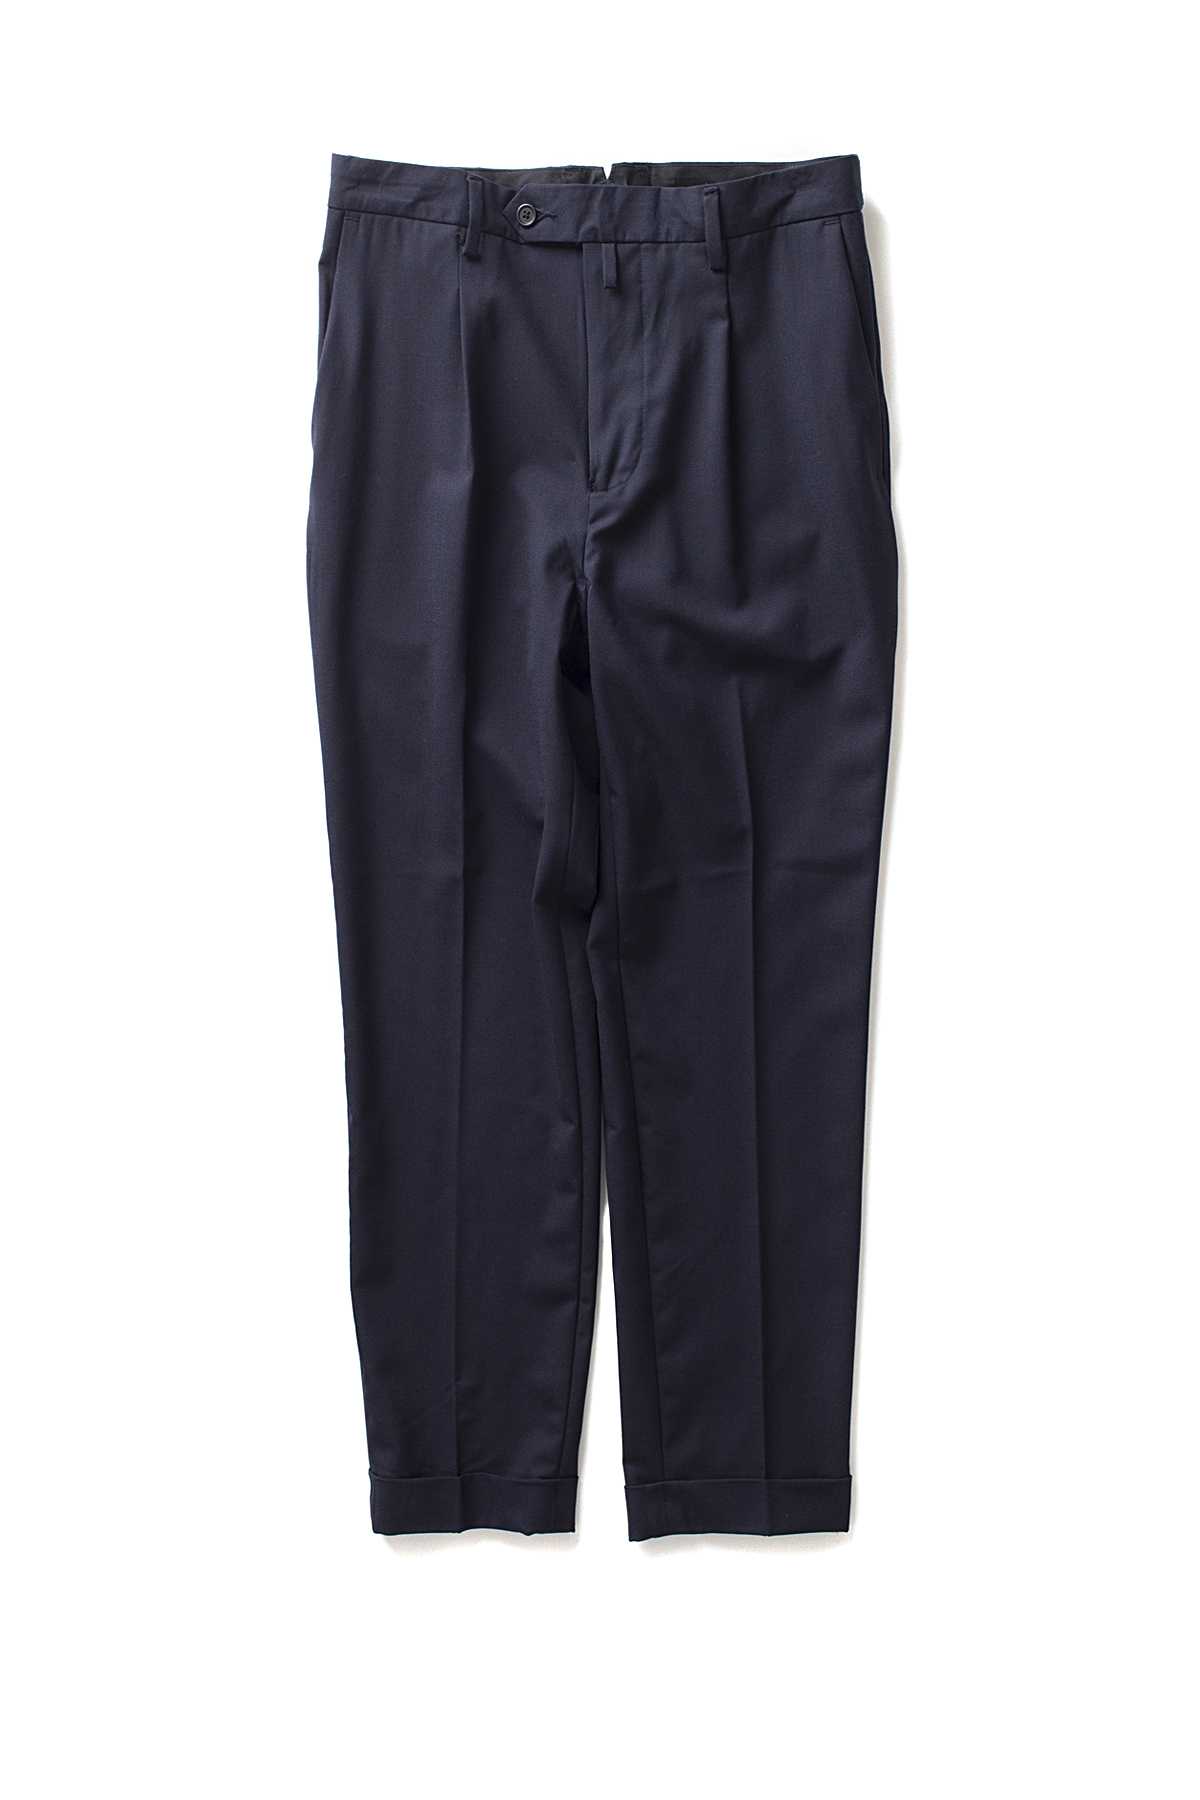 A vontade : 1 Tuck Tropical Trousers (D.Navy)